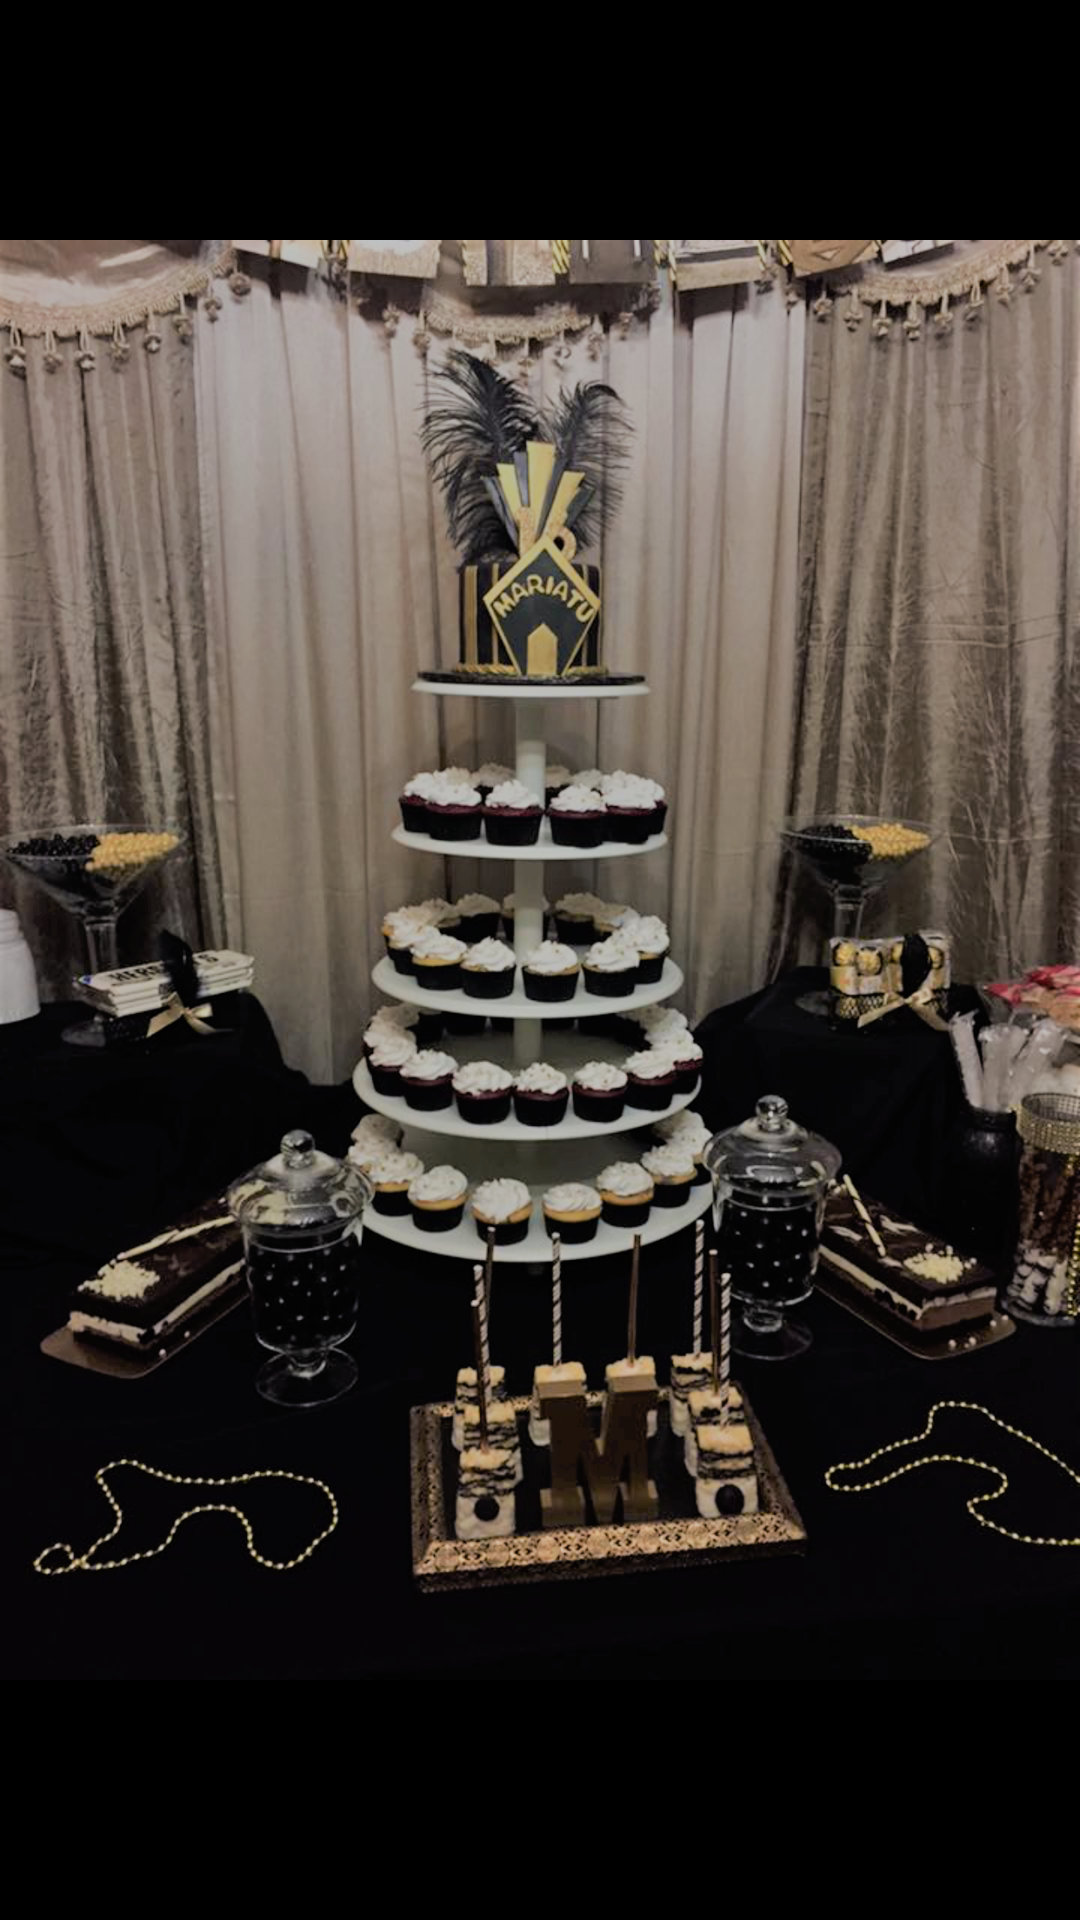 Great Gadsby theme cake and cupcake tower